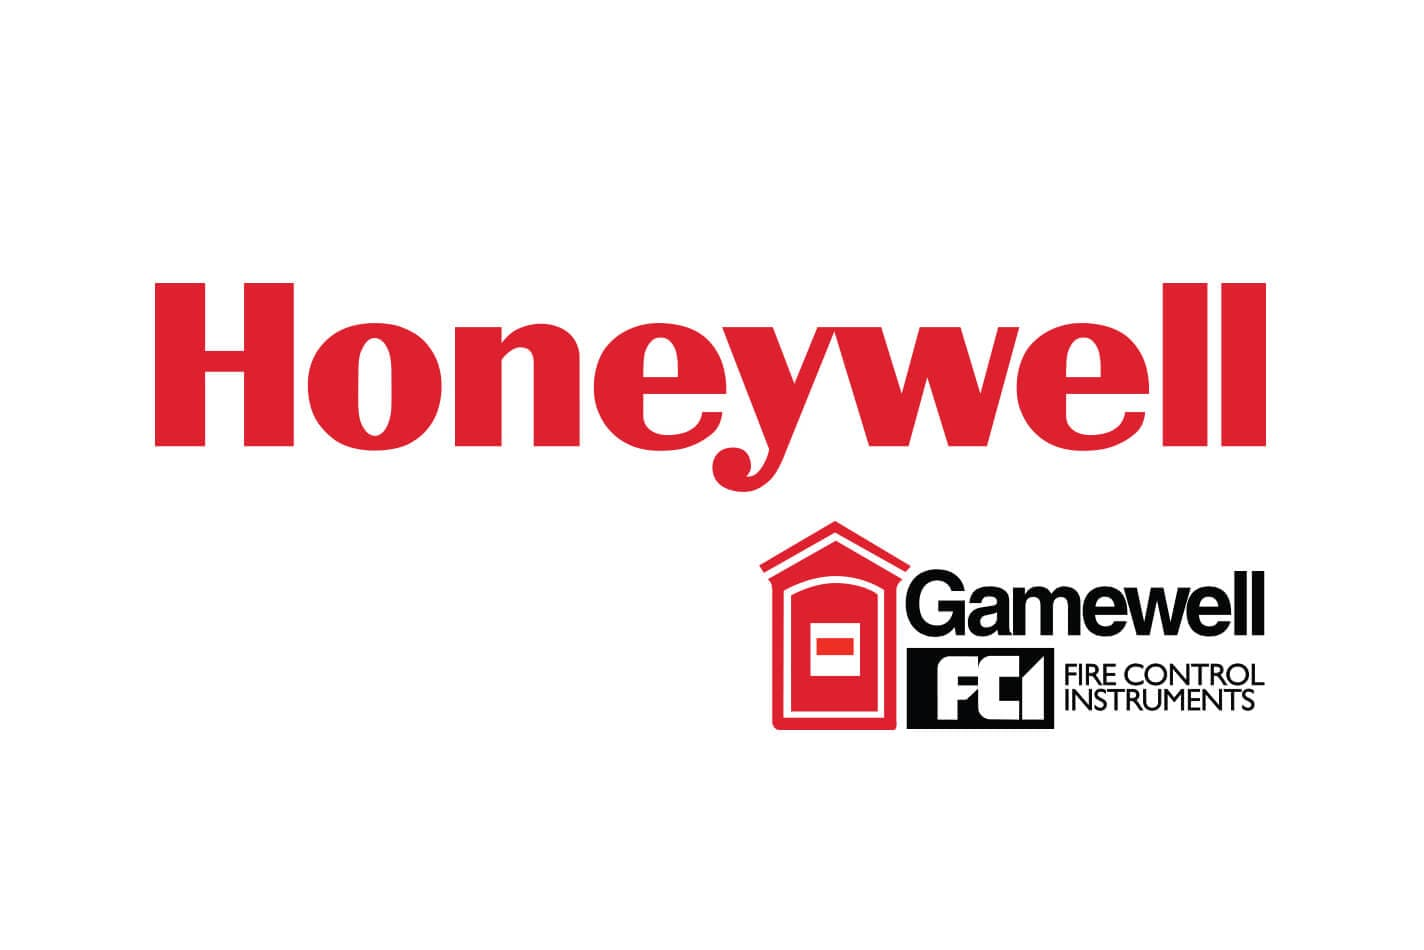 Gamewell-FCI by Honeywell